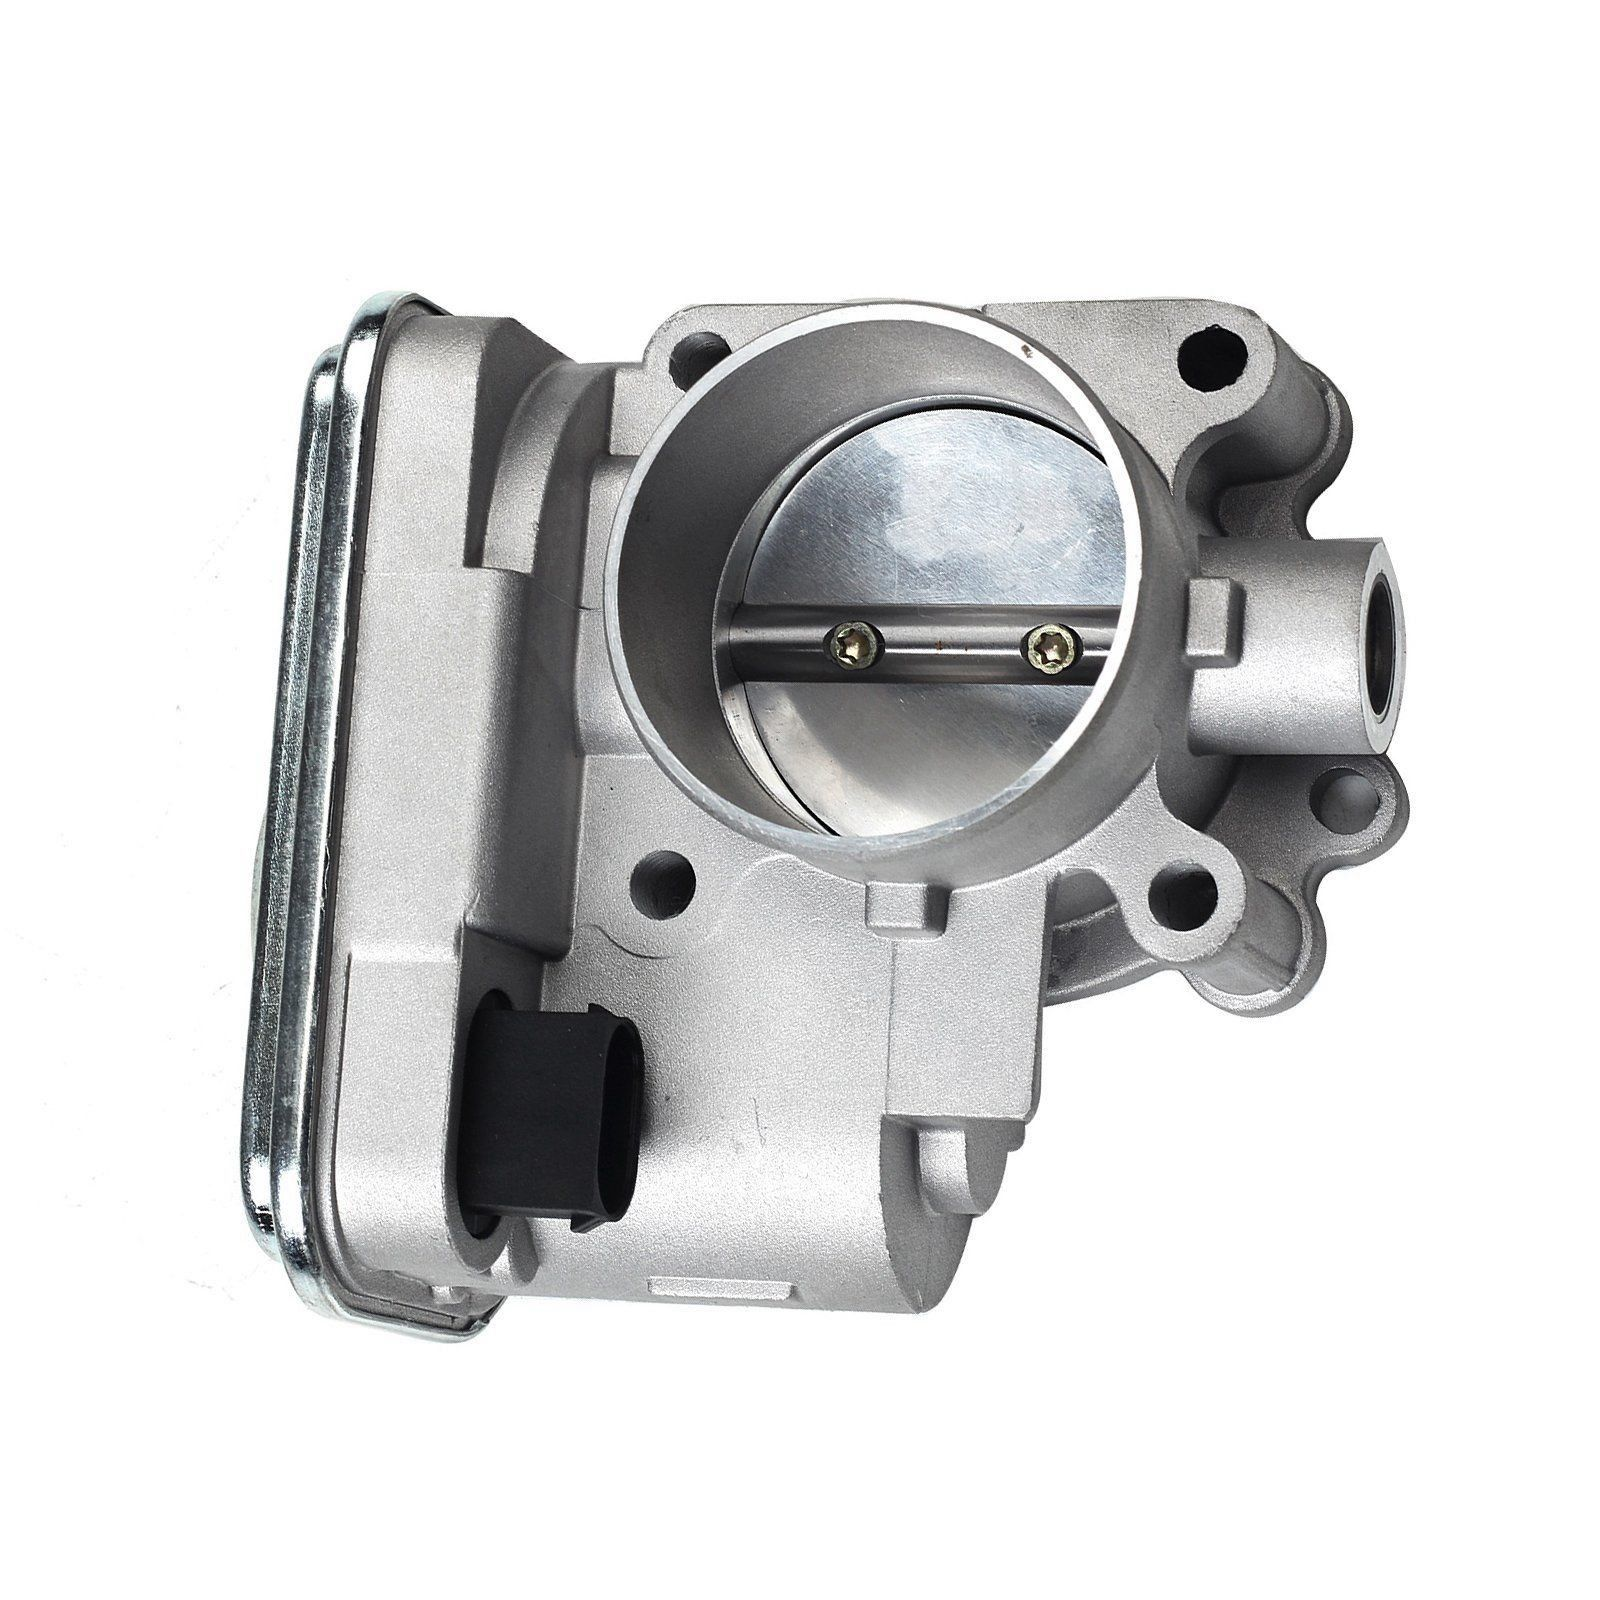 Complete Throttle Body For Jeep/Chrysler/Dodge/Compass/Caliber 4884551AA  04891735AC Auto Replacement Parts 1 8L 2 0L 2 4L